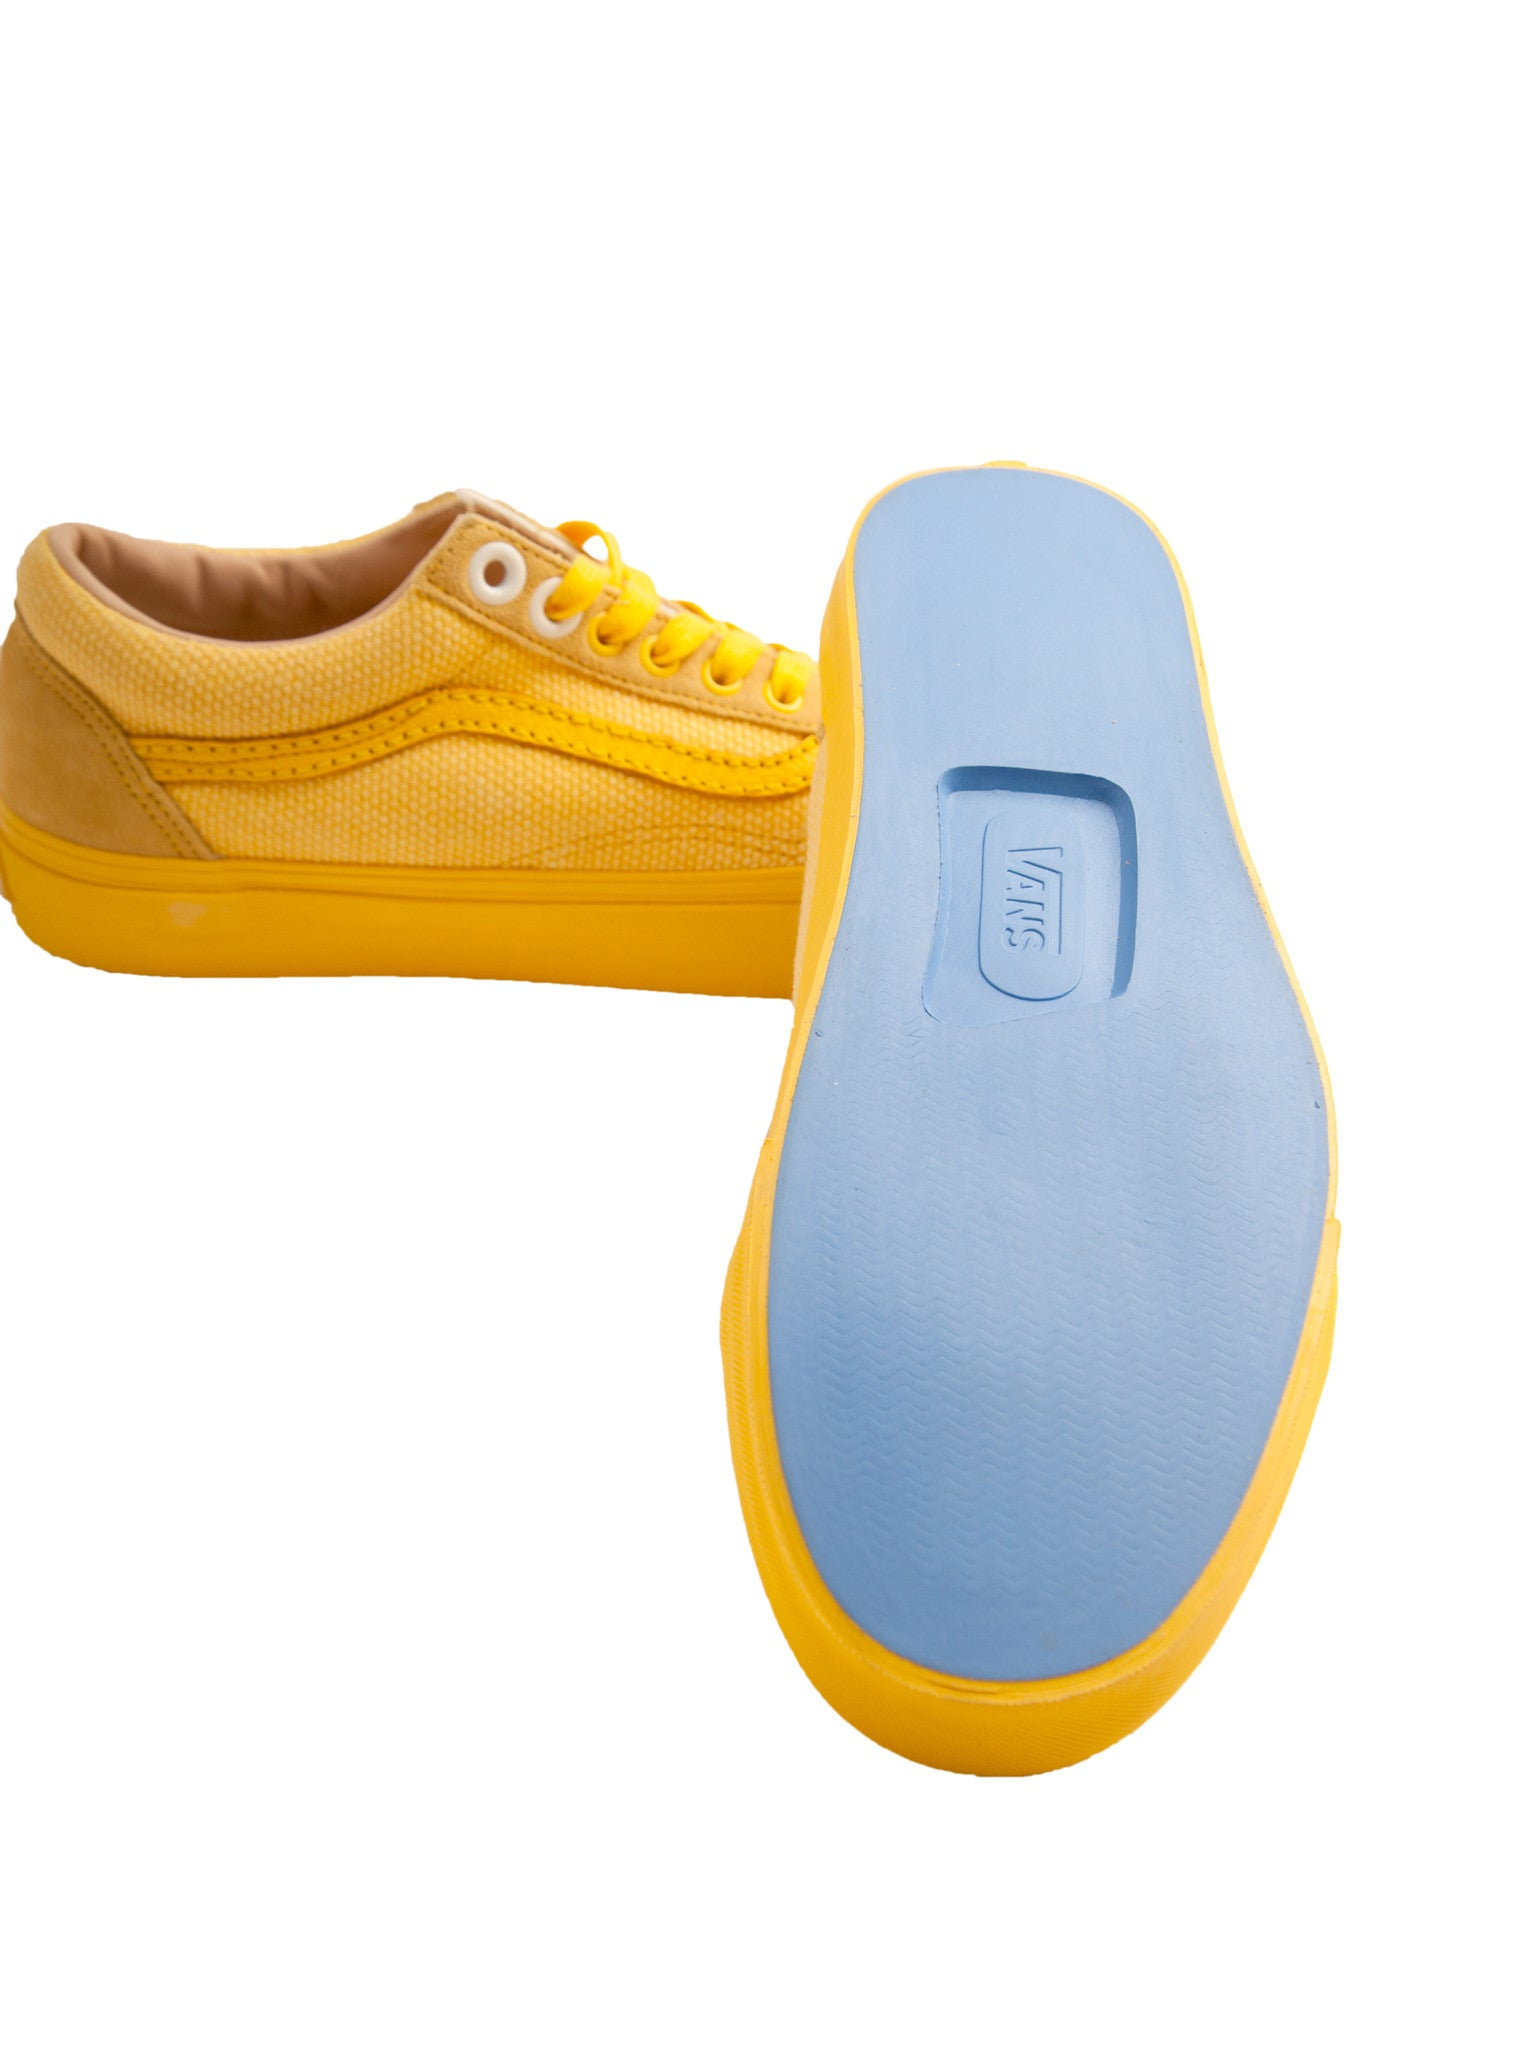 Citrus Vans Vault Old Skool (UNION) - Citrus 5